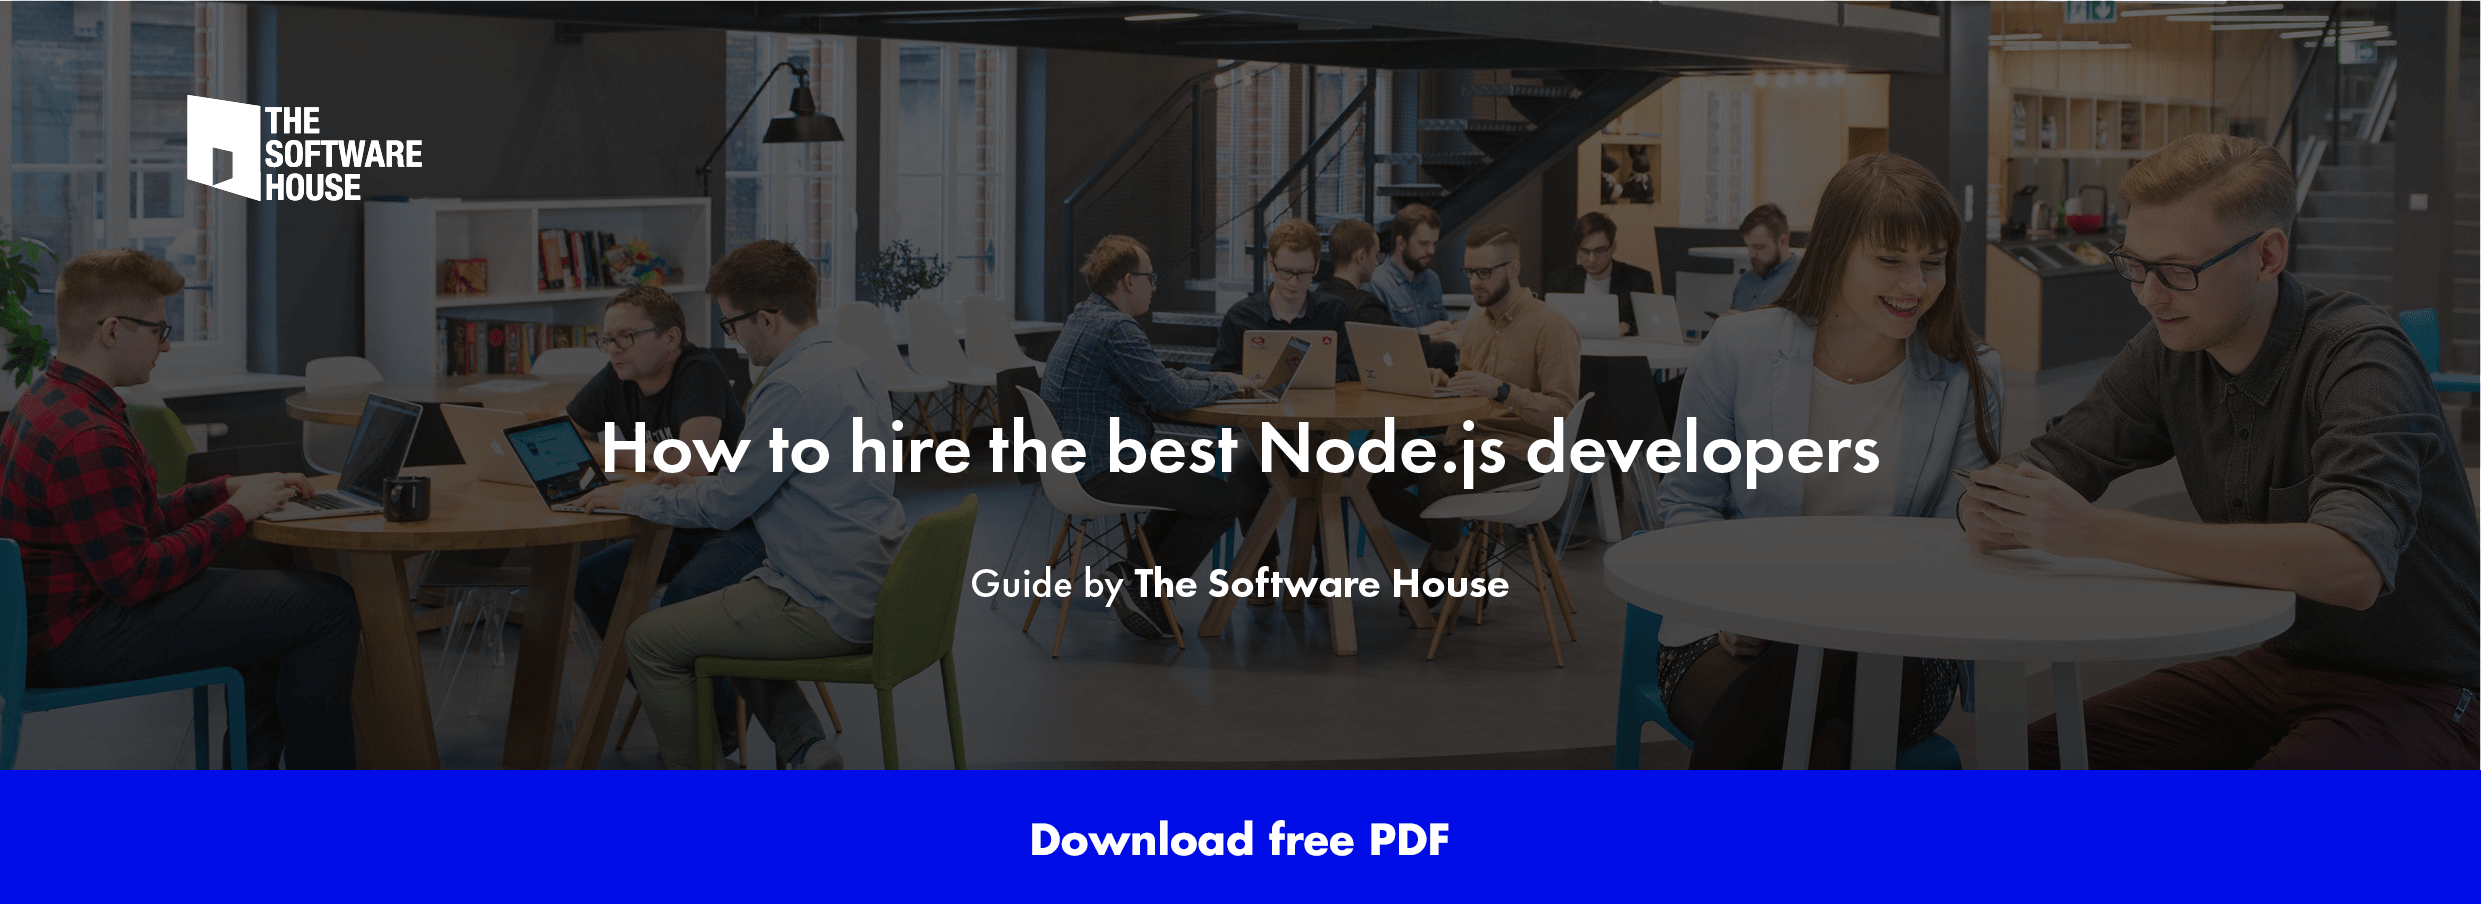 how to find the best node.js developers – download free infographic in pdf